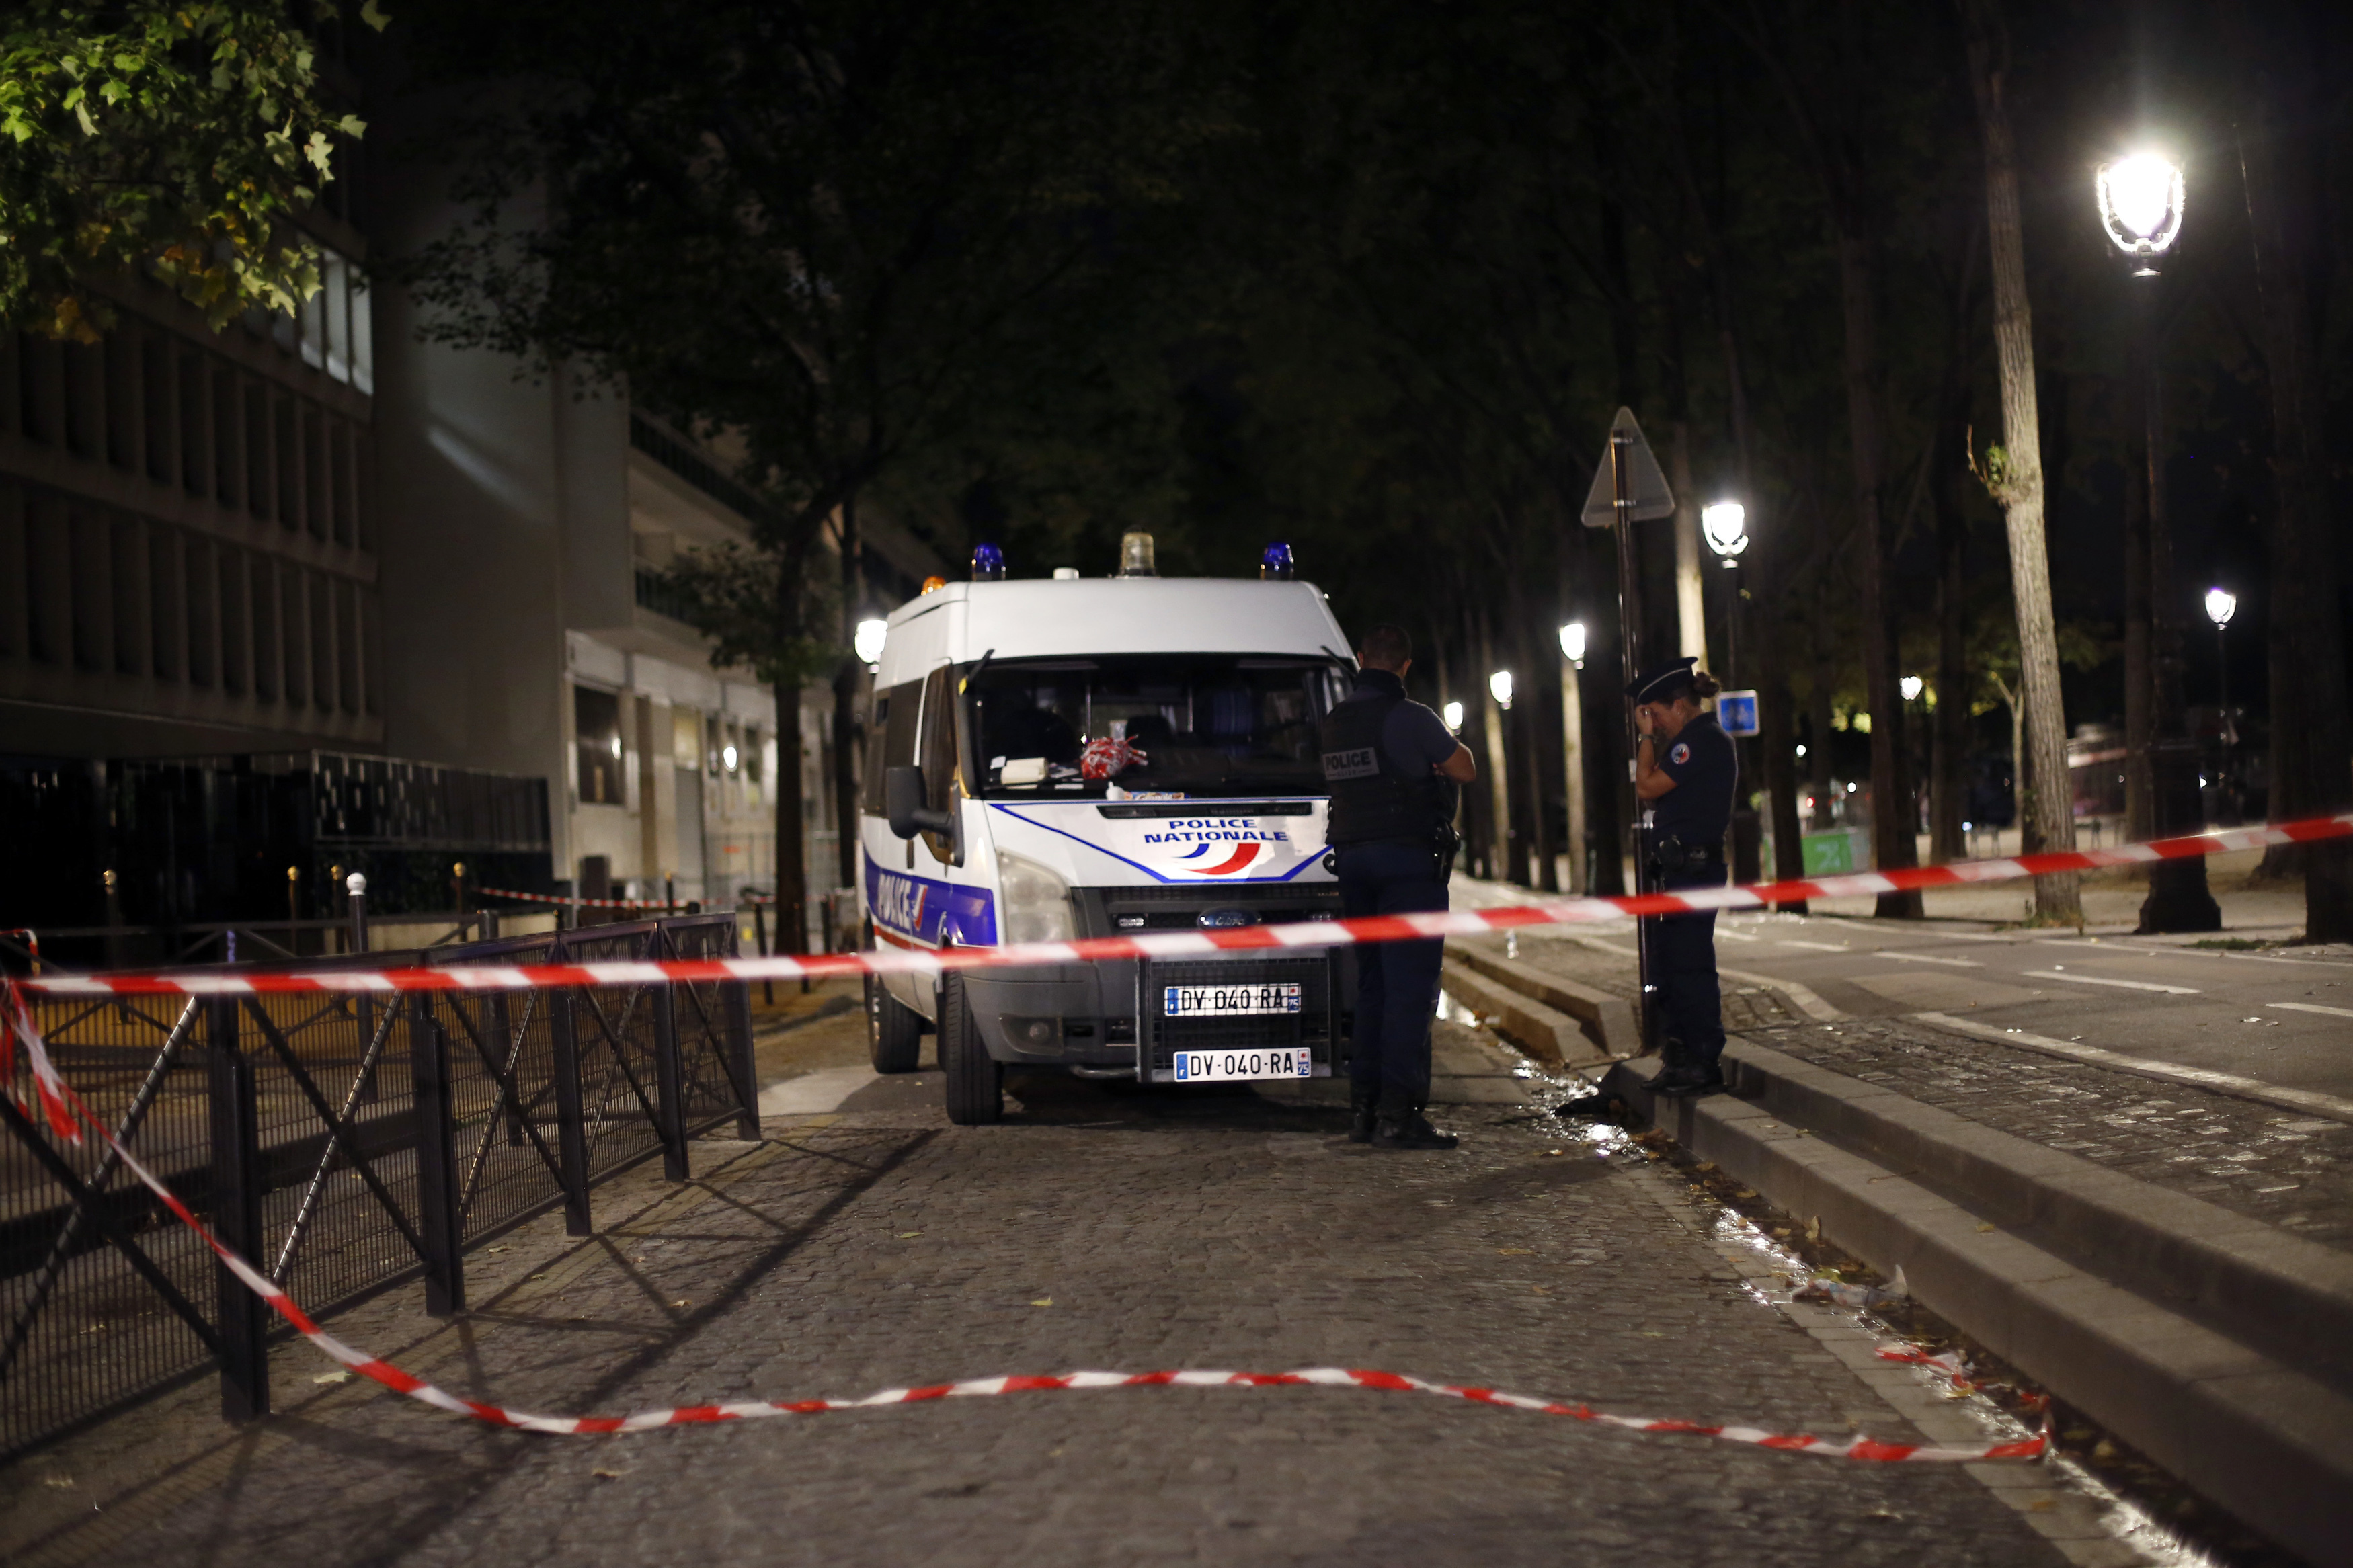 Paris knife attack leaves 7 wounded